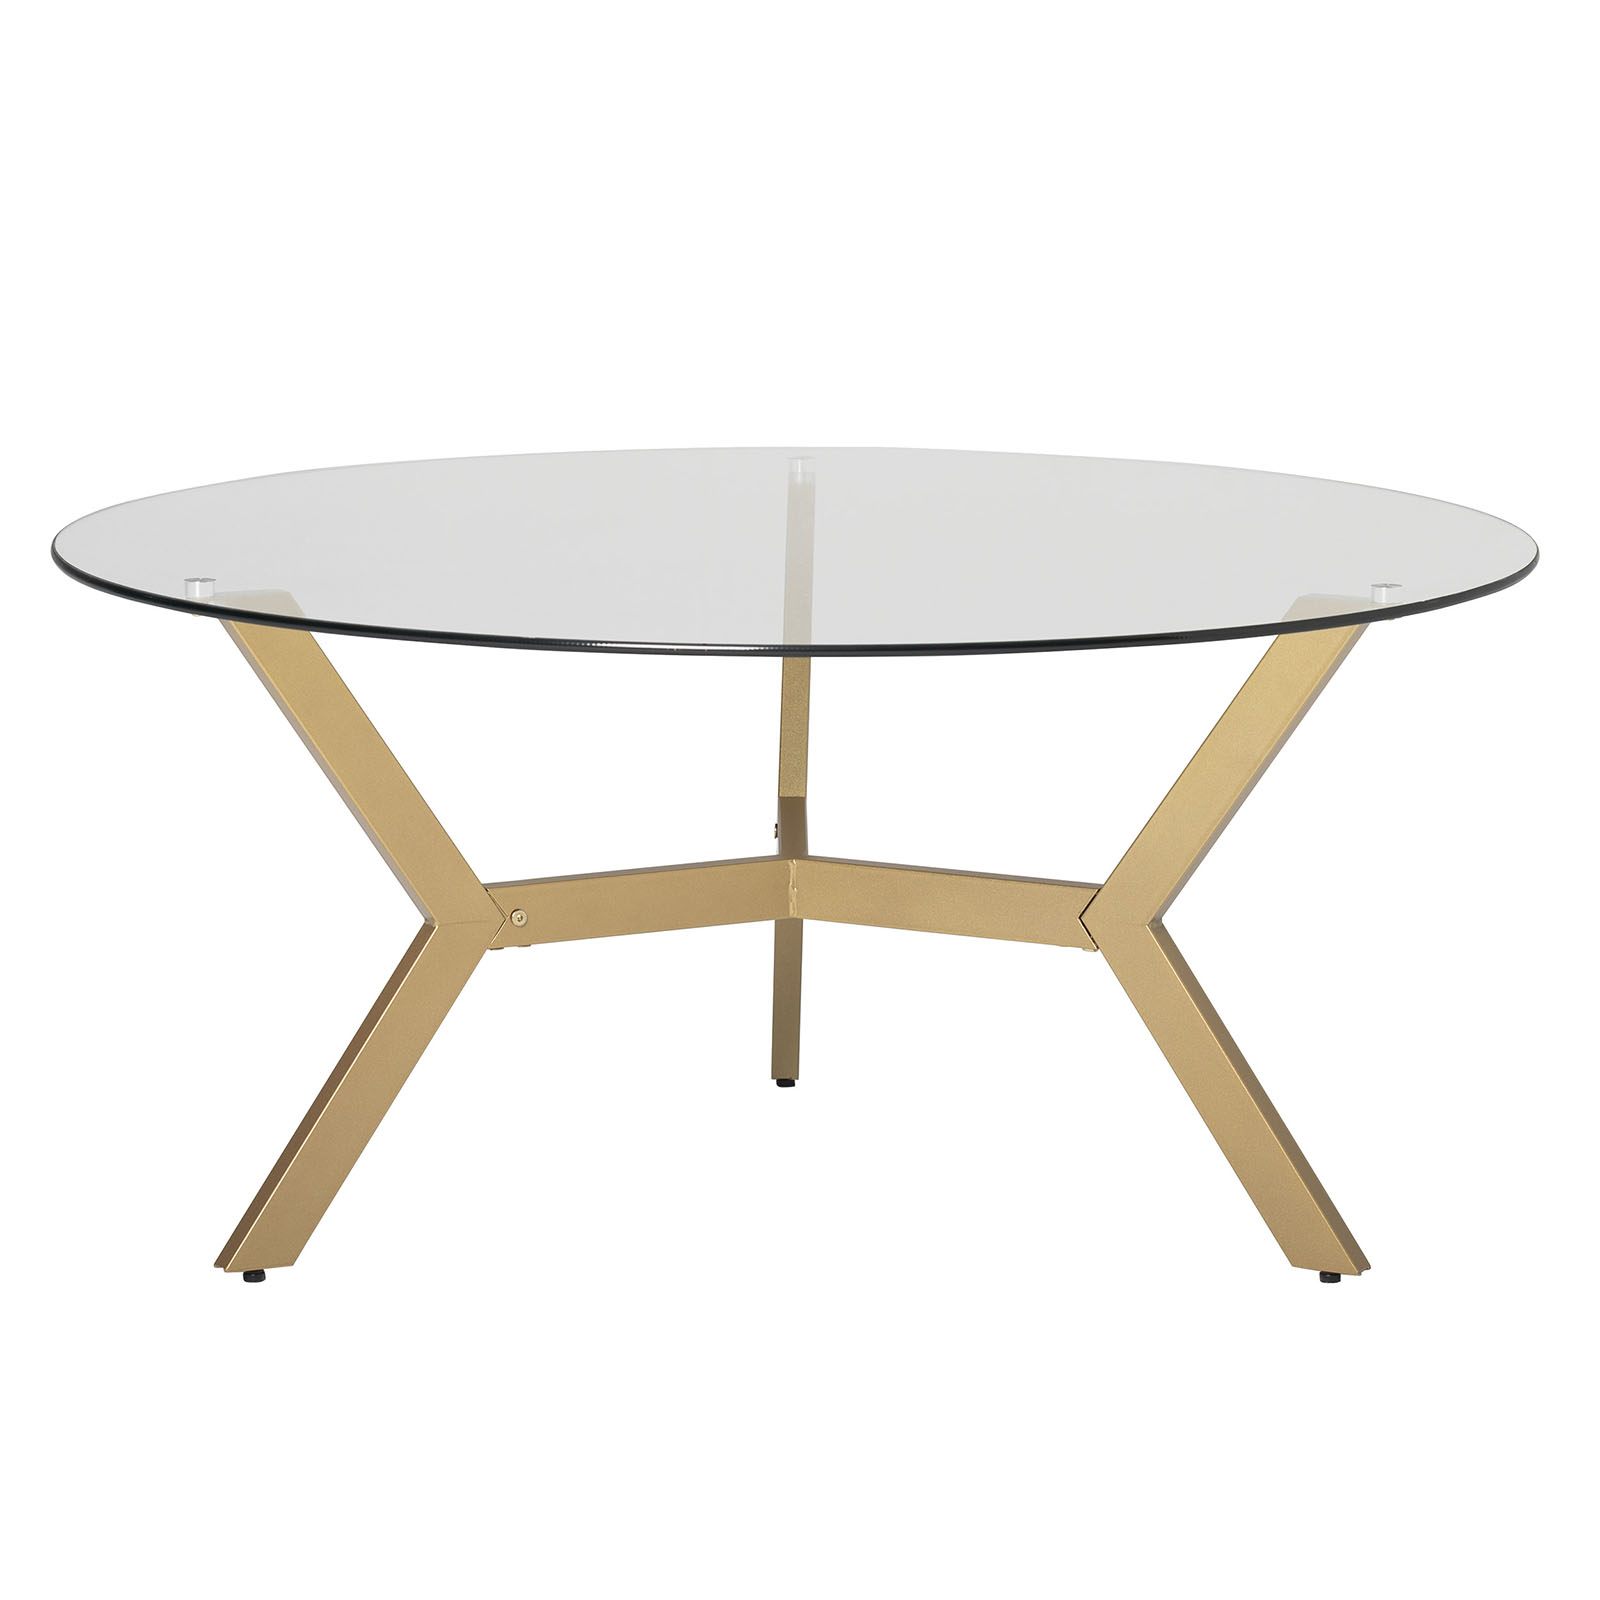 71039 ArchTech Round Coffee Table rear